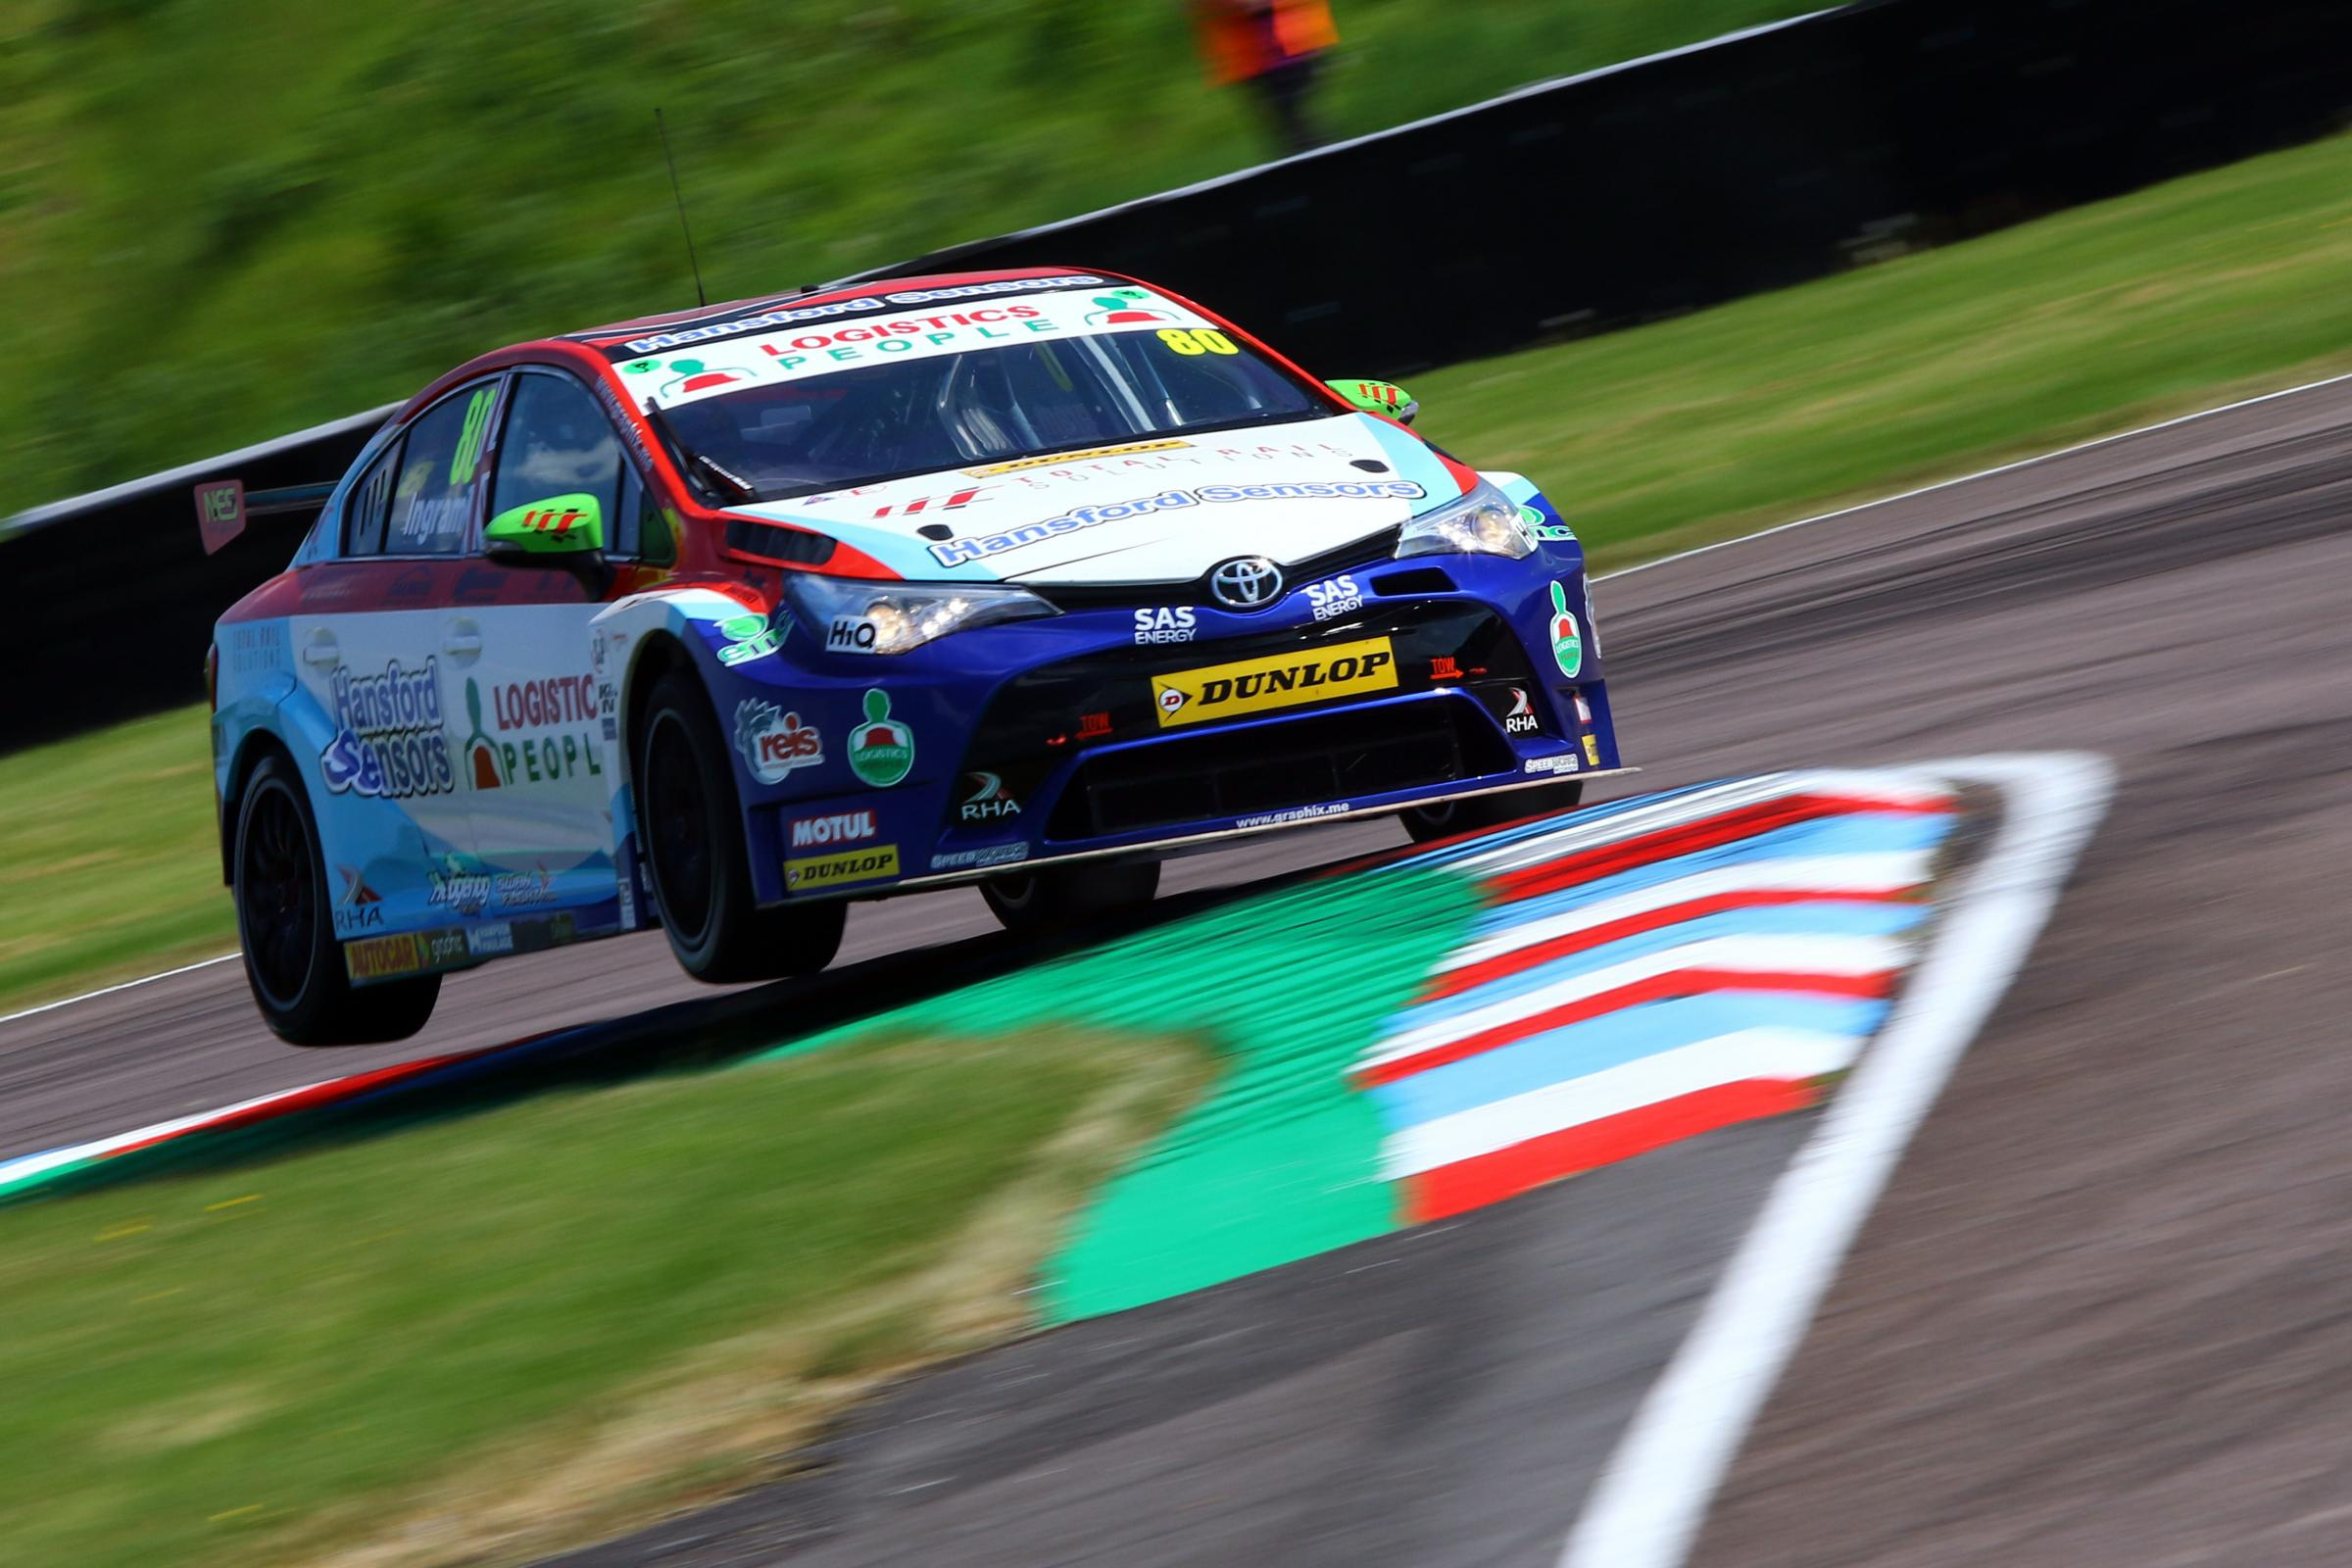 Tom Ingram on the attack behind the wheel of Speedworks Motorsport's Toyota Avensis during qualifying for the British Touring Car Championship's third round at Thruxton last Saturday. Picture: Matt Sayle Photography